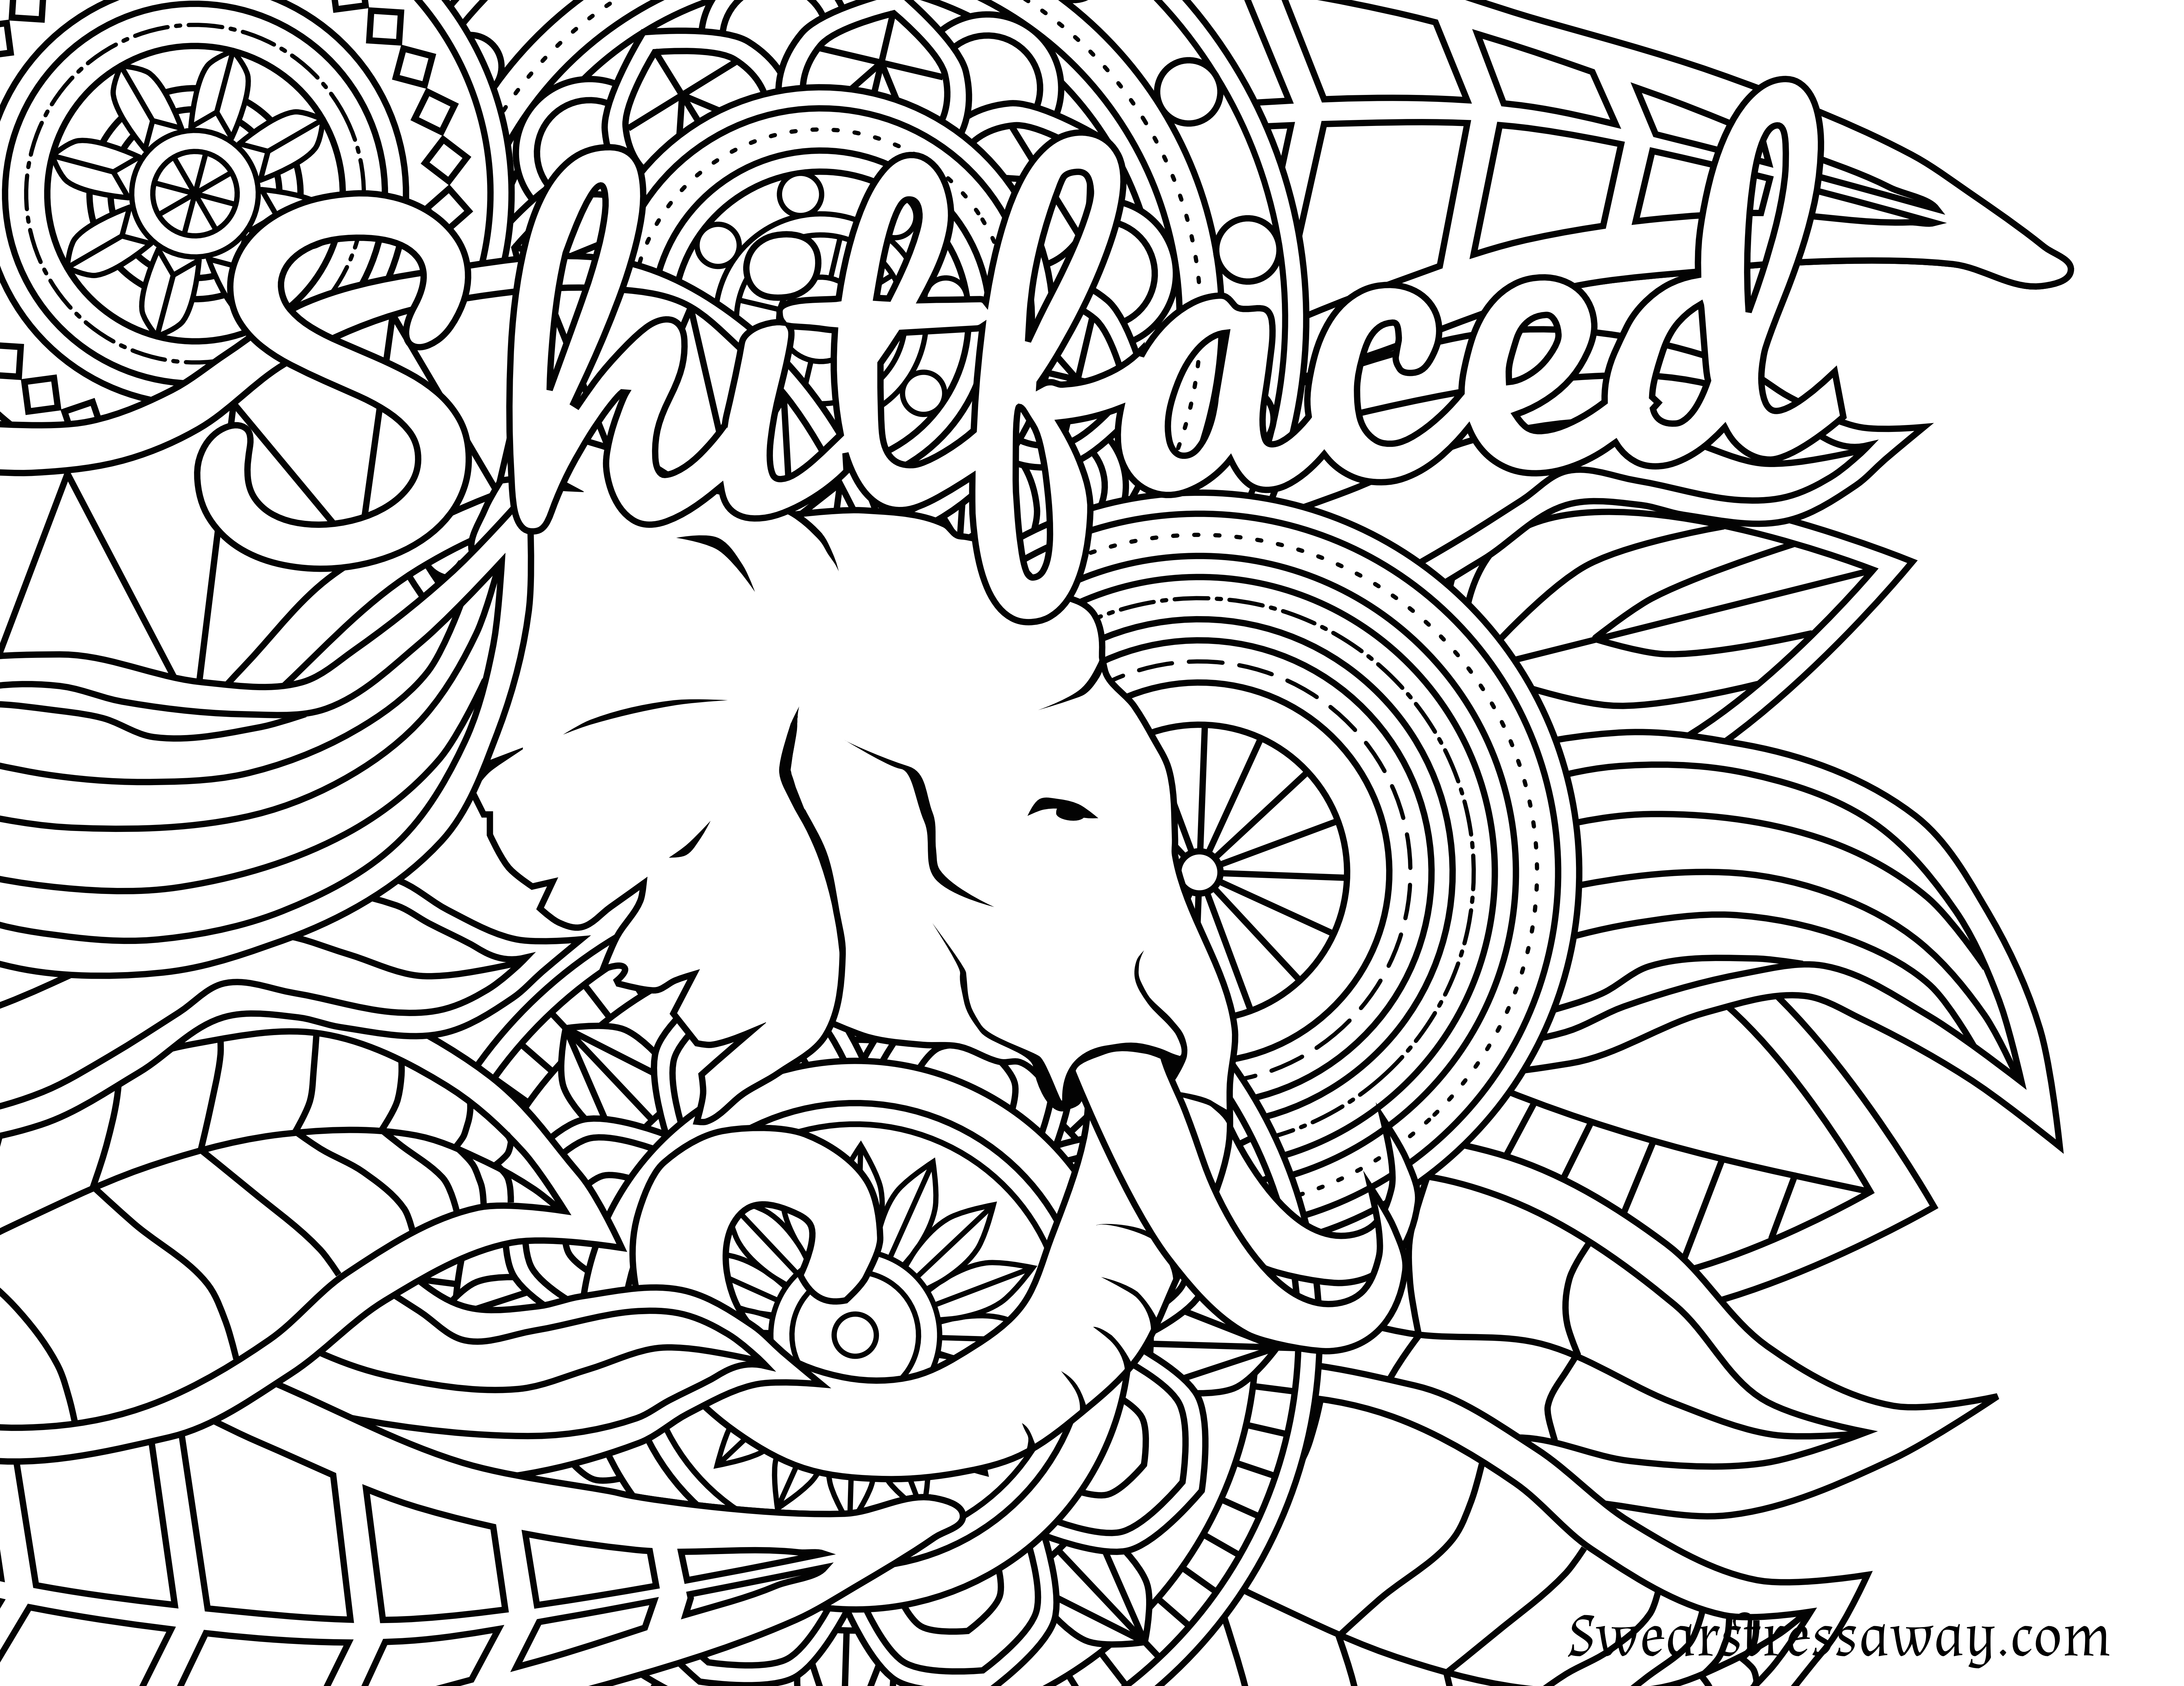 Pin on Swear Word Coloring Pages | free printable coloring pages for adults only swear words